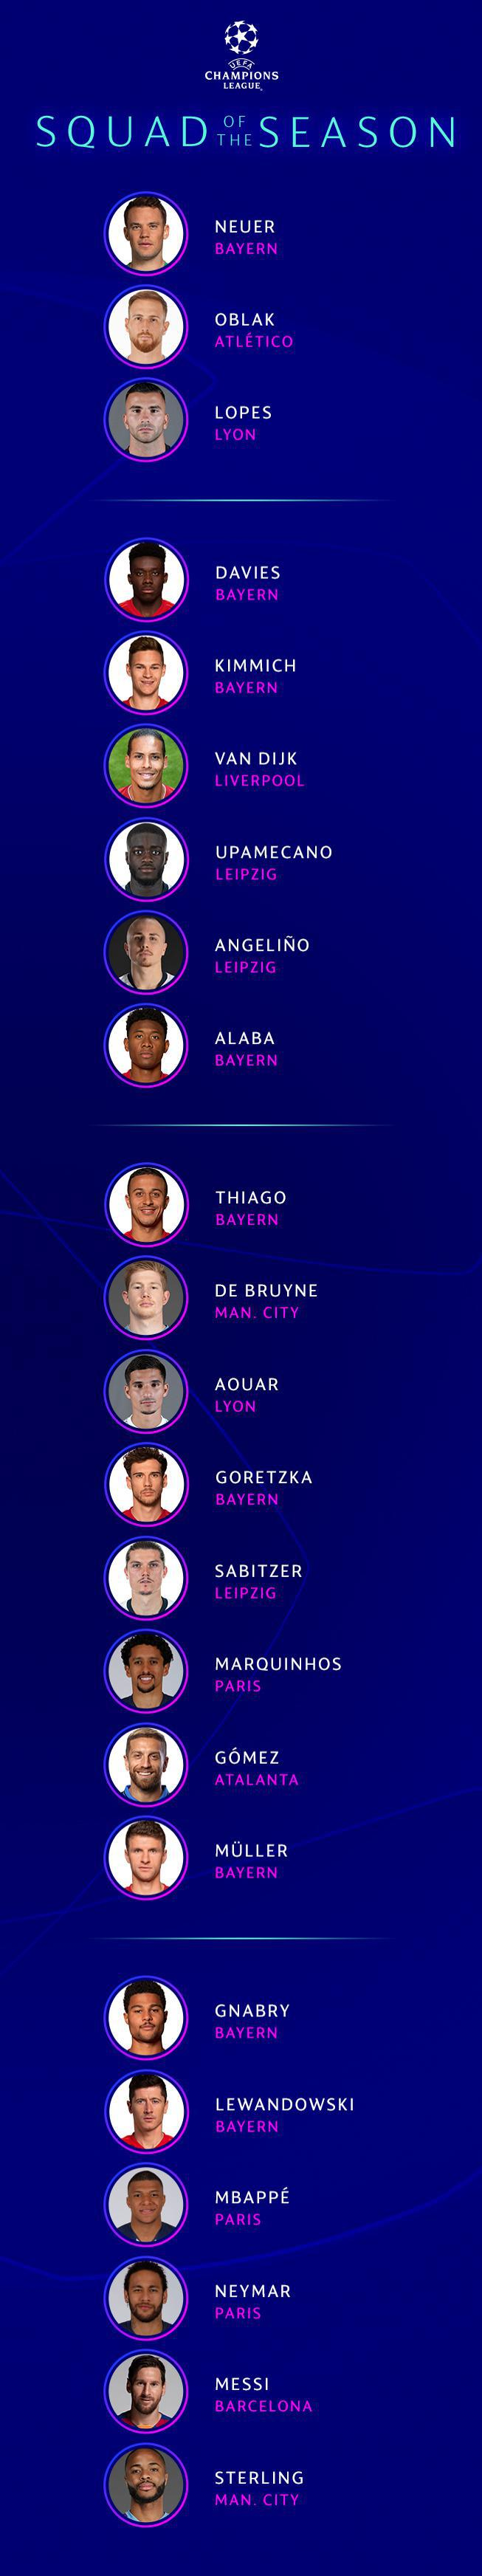 uefa champions league squad of the season uefa champions league uefa com uefa champions league squad of the